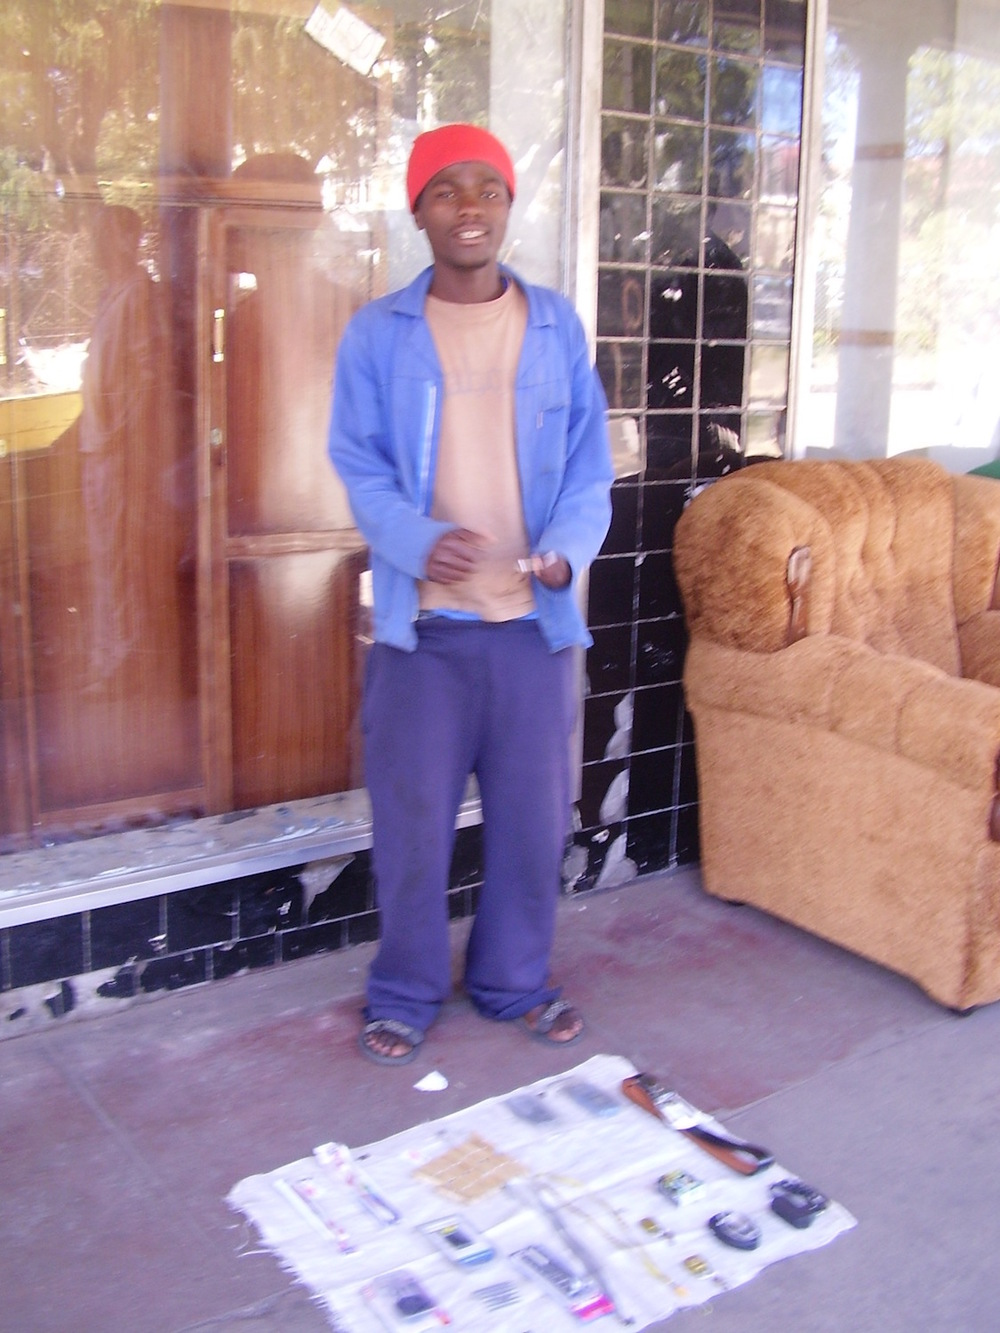 Pic: Young man selling mobile phones and accessories, Bulawayo.